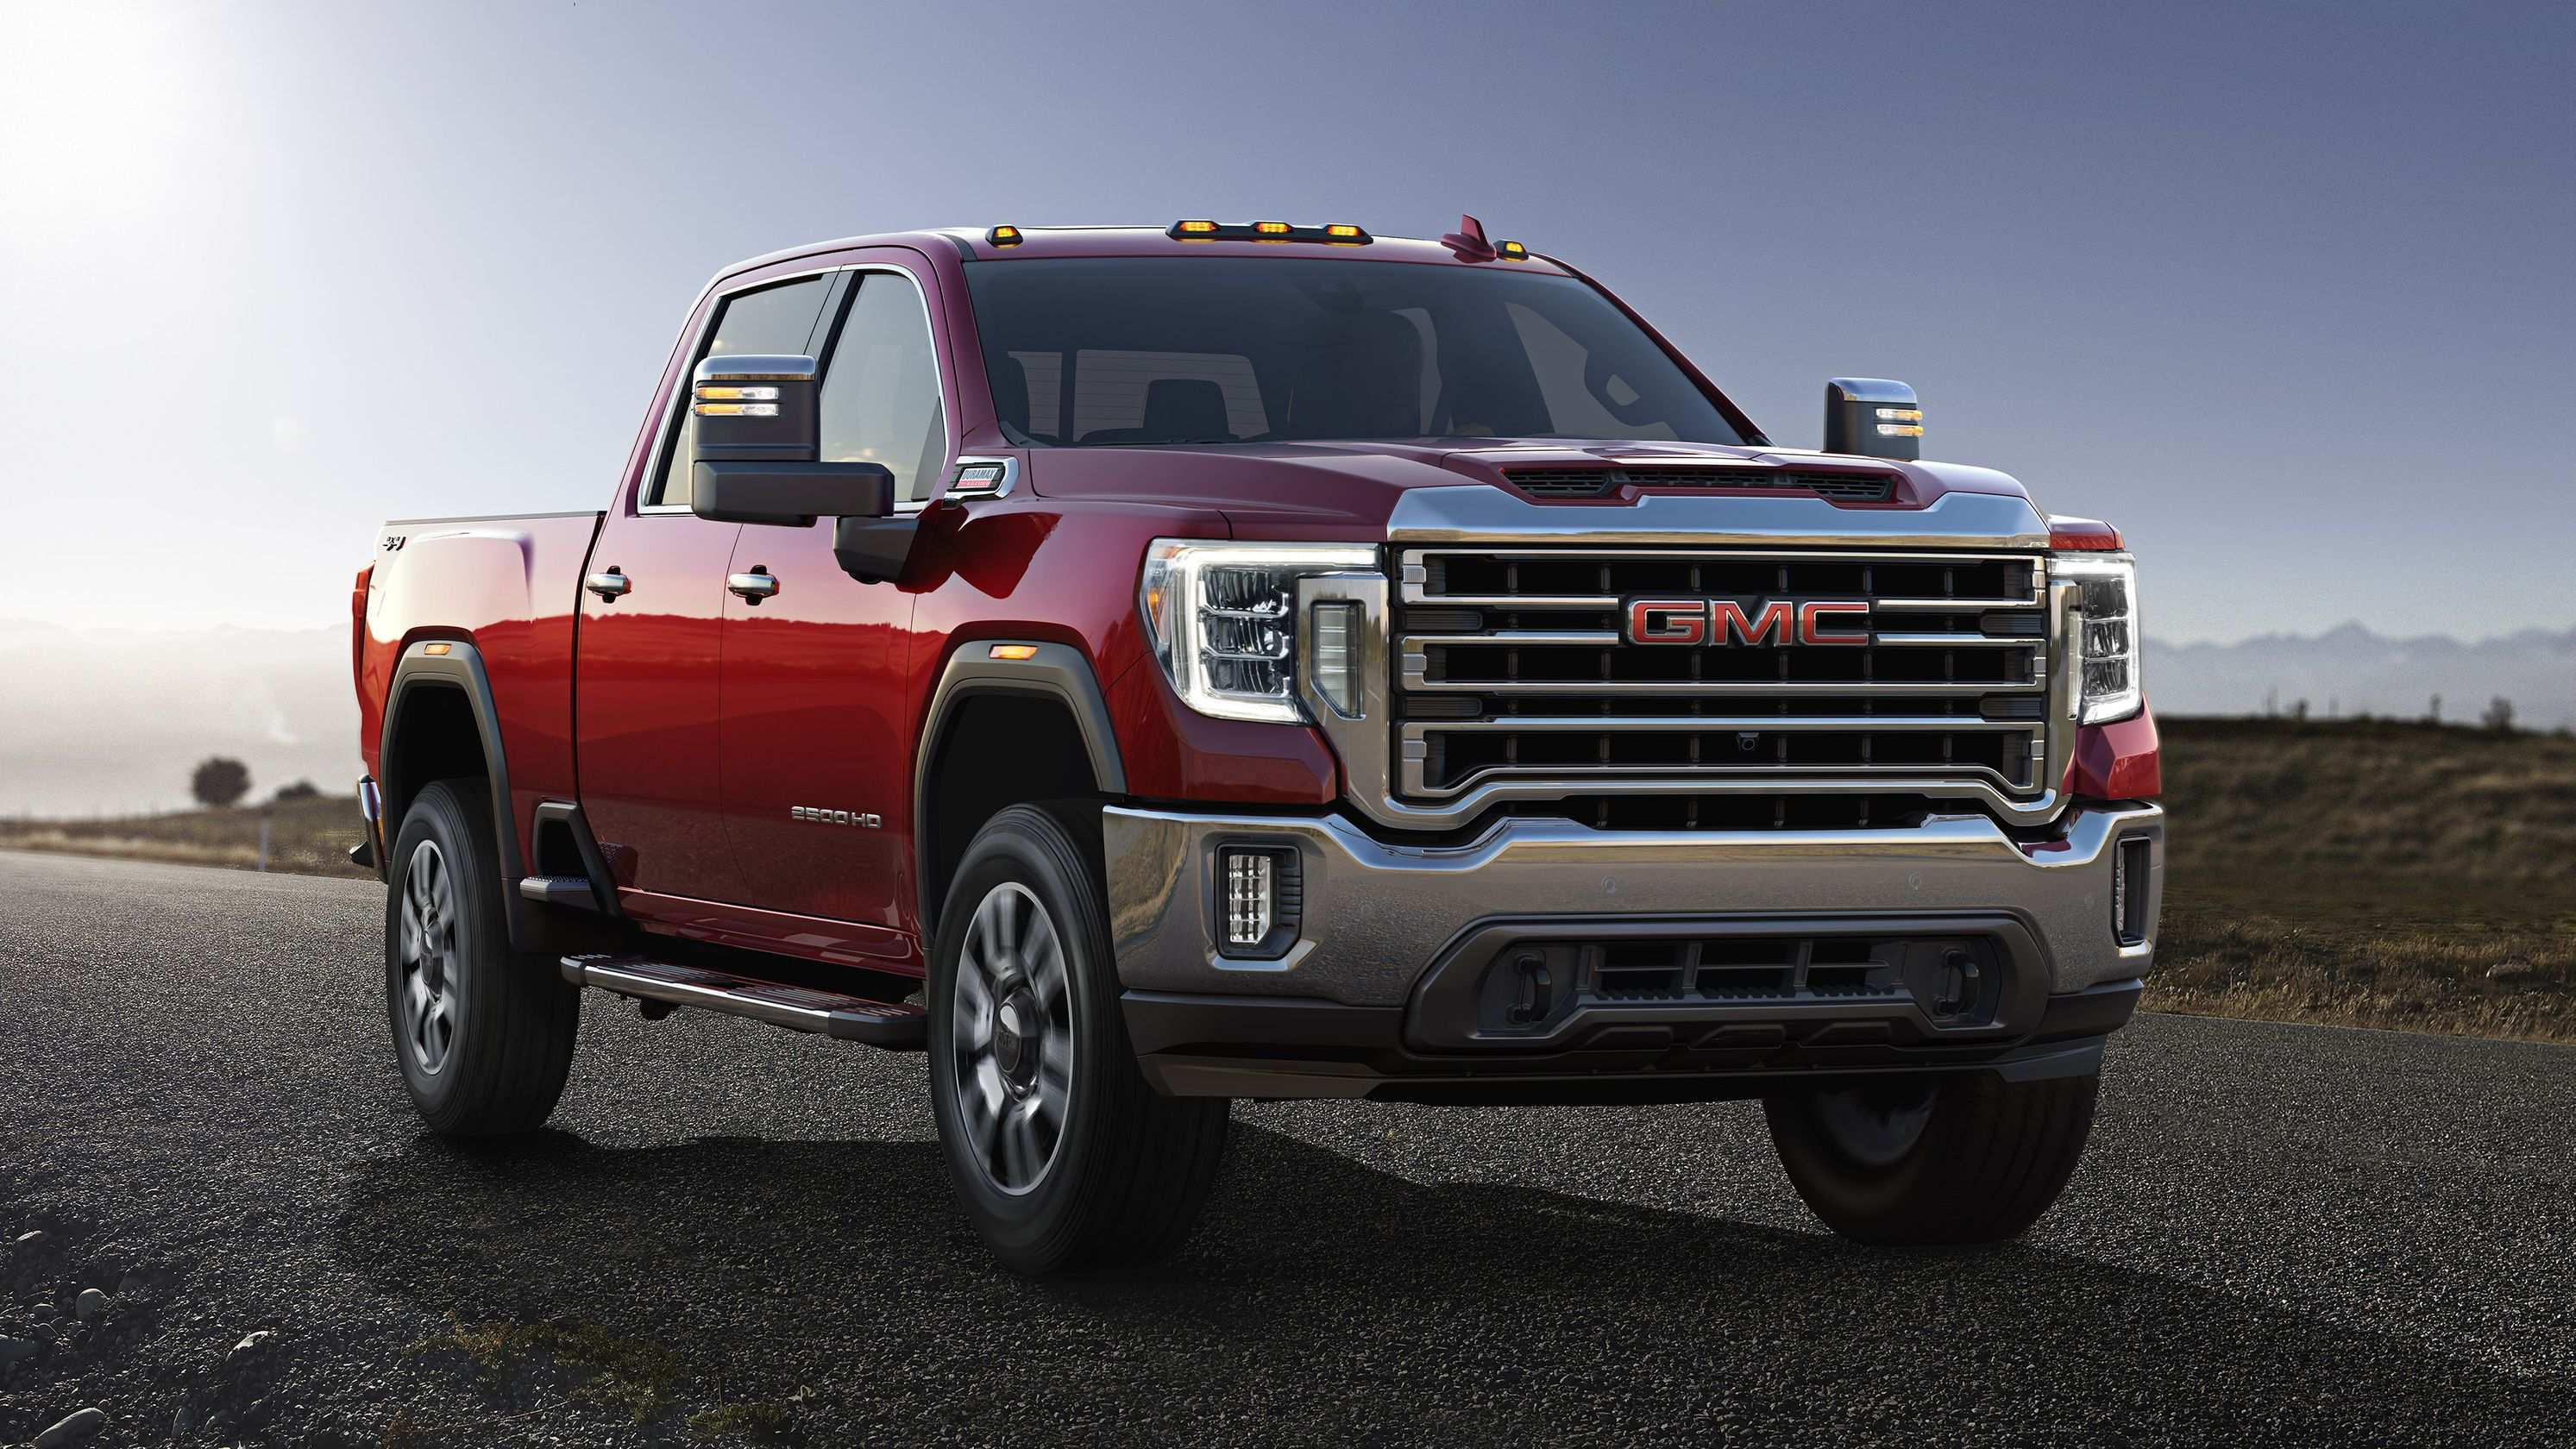 34 New 2020 Gmc Sierra Denali Pictures with 2020 Gmc Sierra Denali